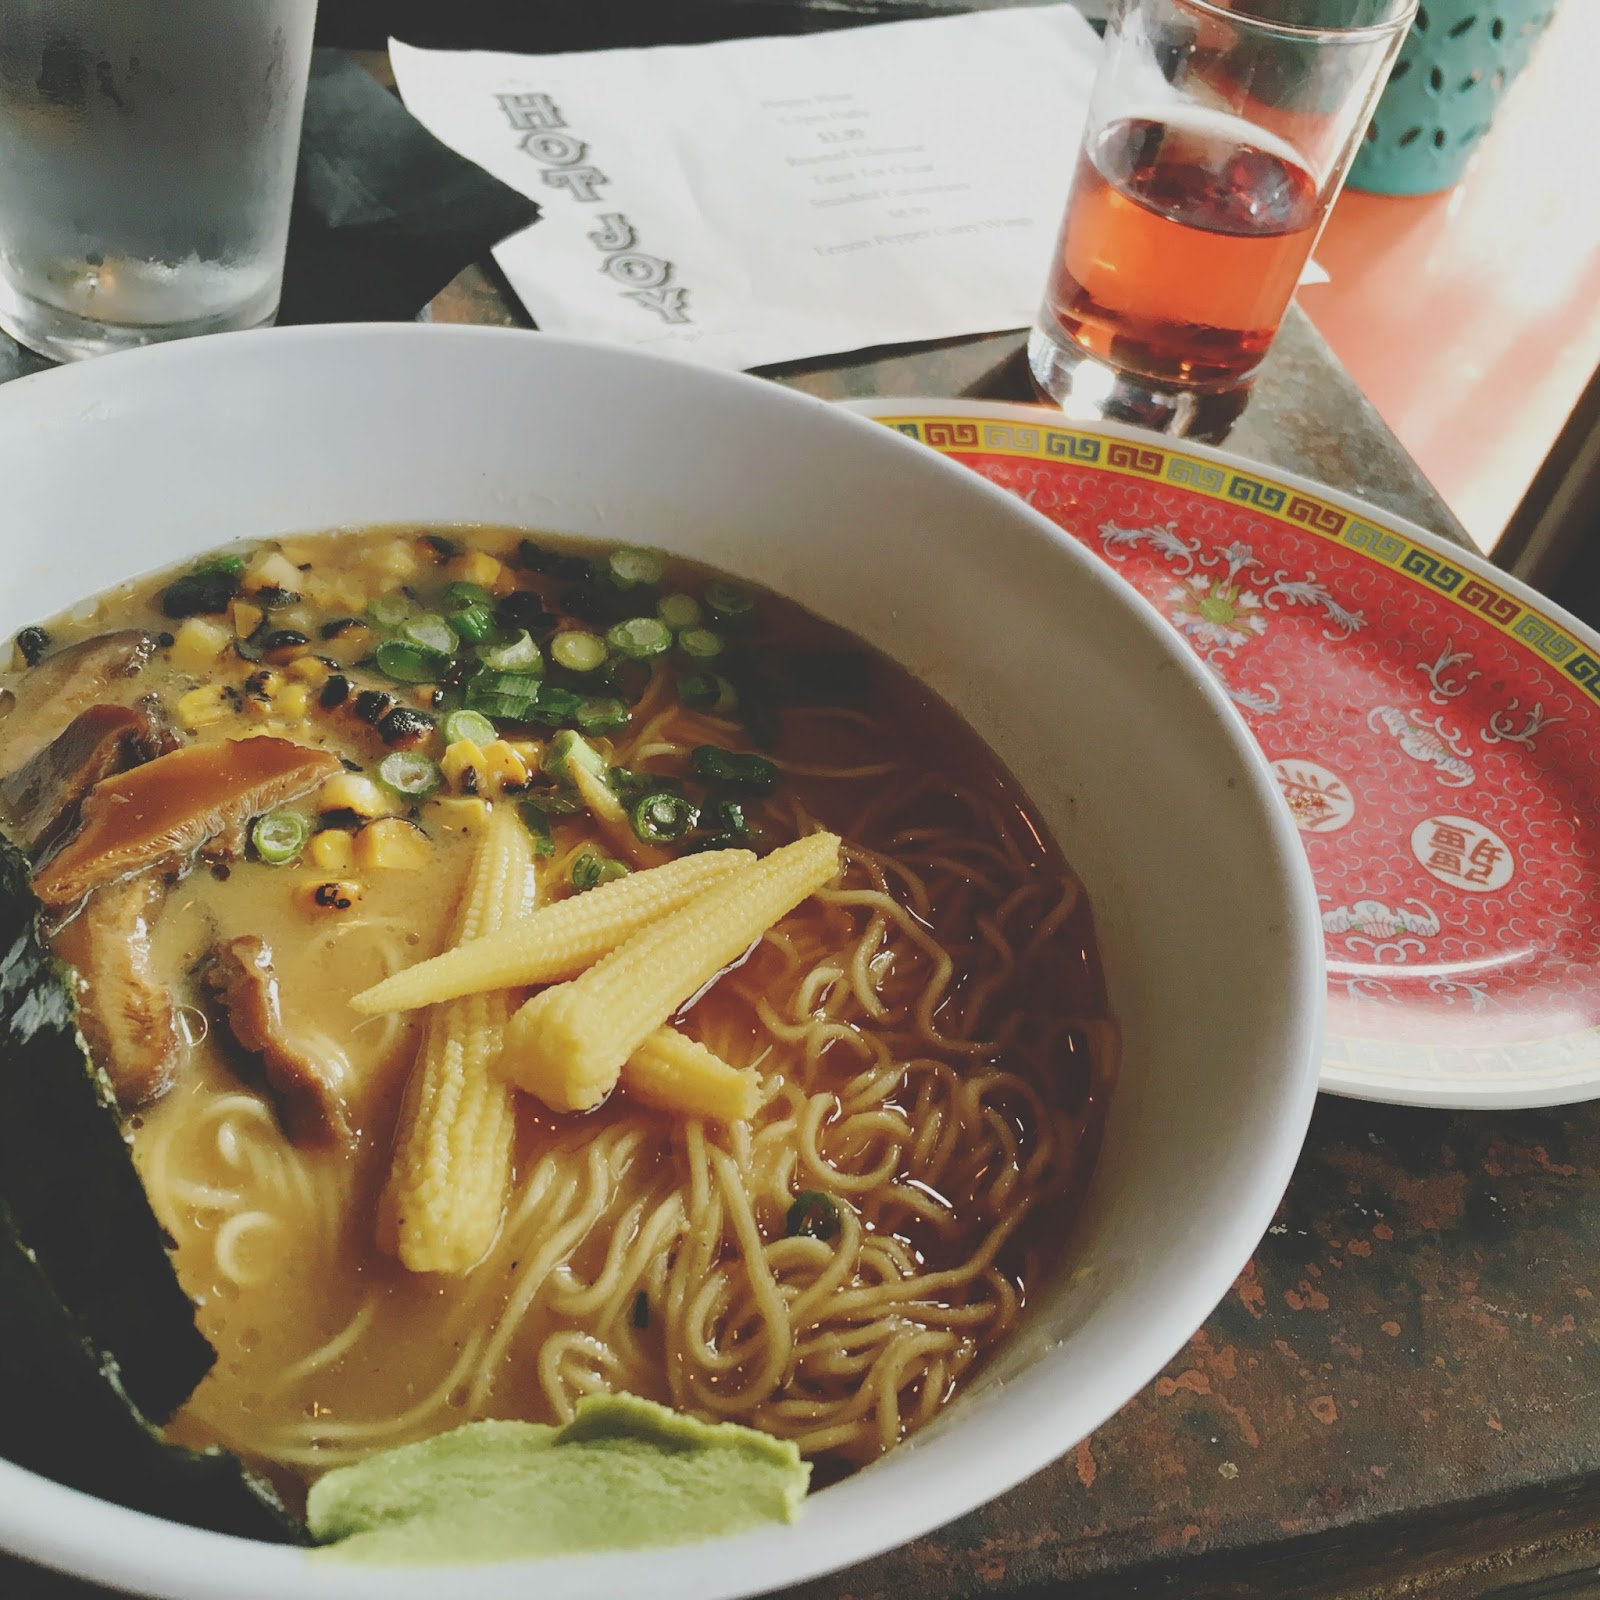 double miso ramen at Hot Joy - a restaurant in San Antonio, Texas